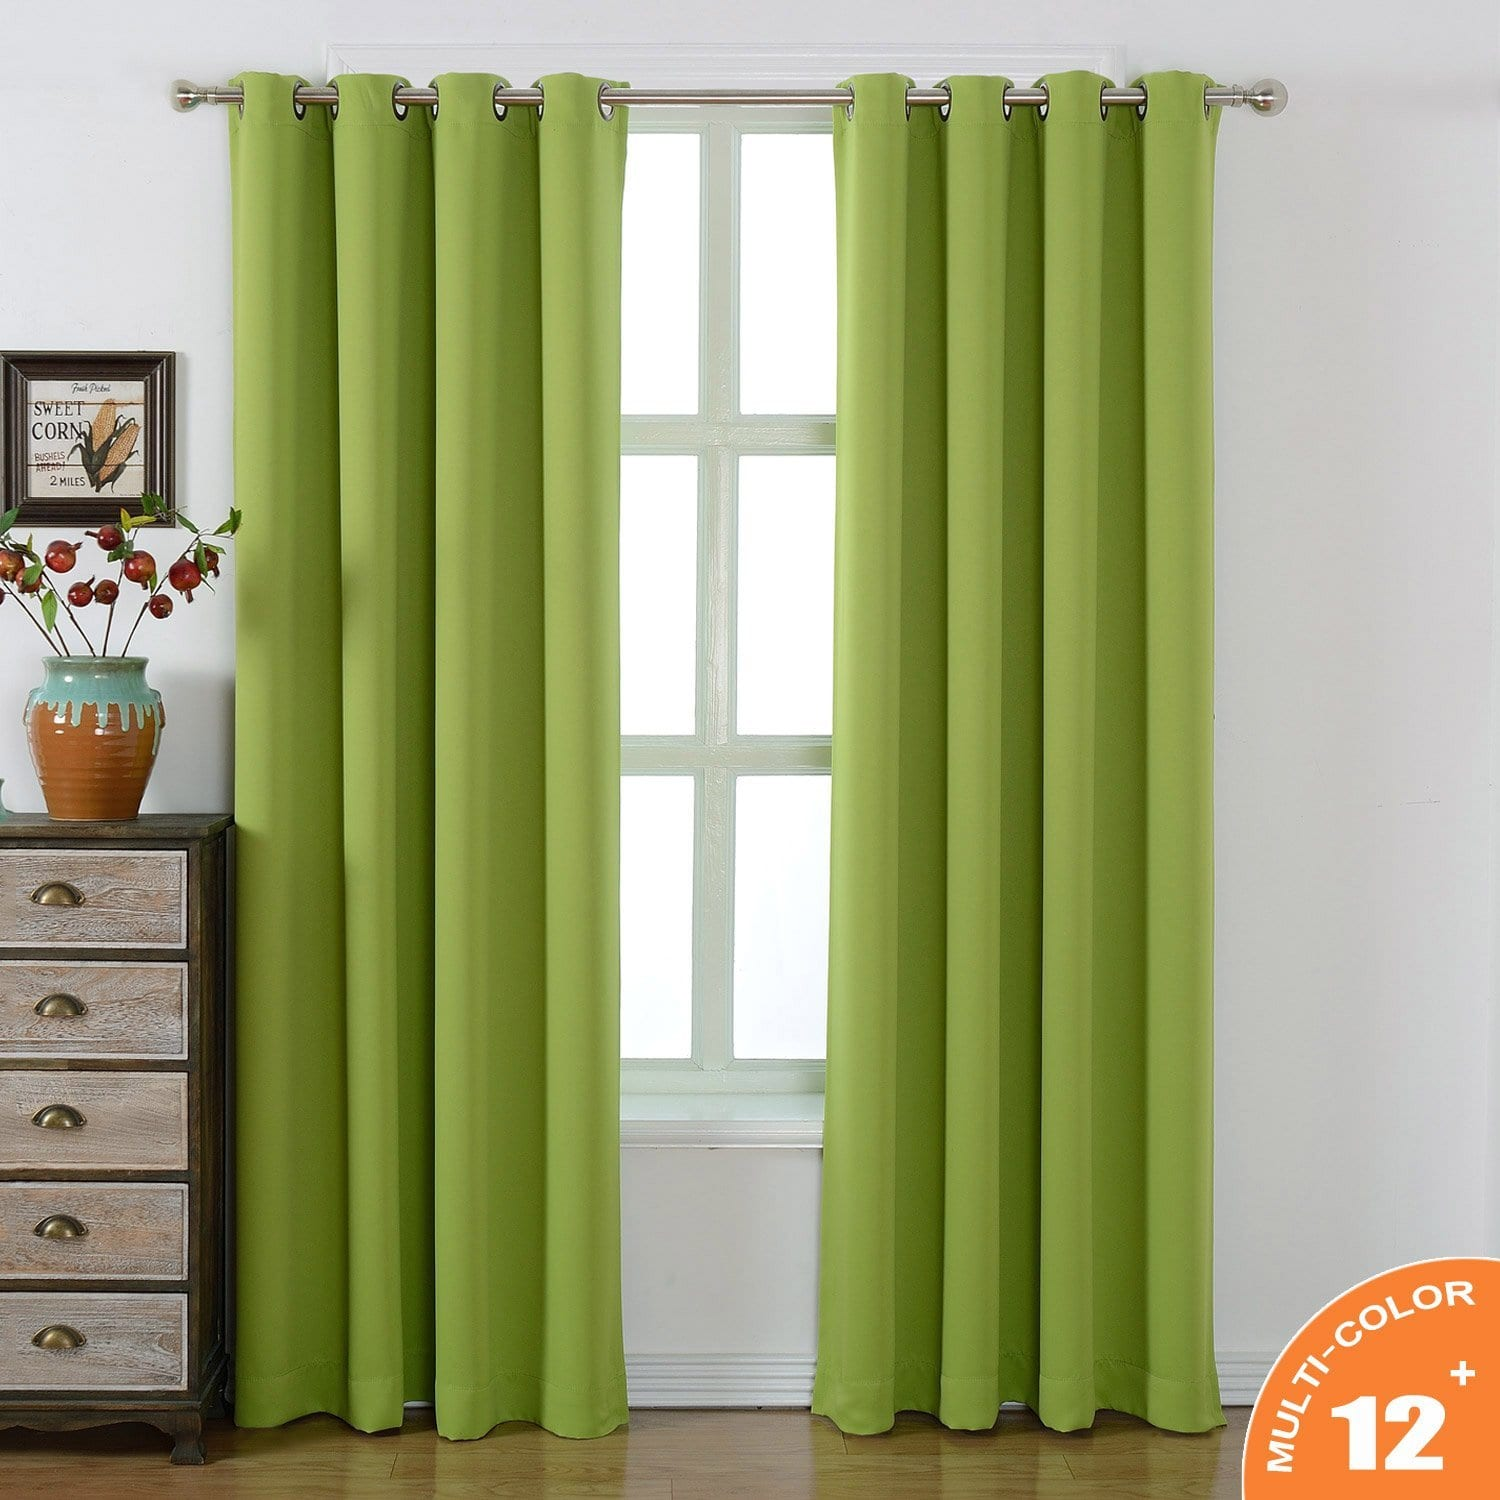 Most List Of Best Sliding Glass Door Curtains With Reviews Top 10 Review